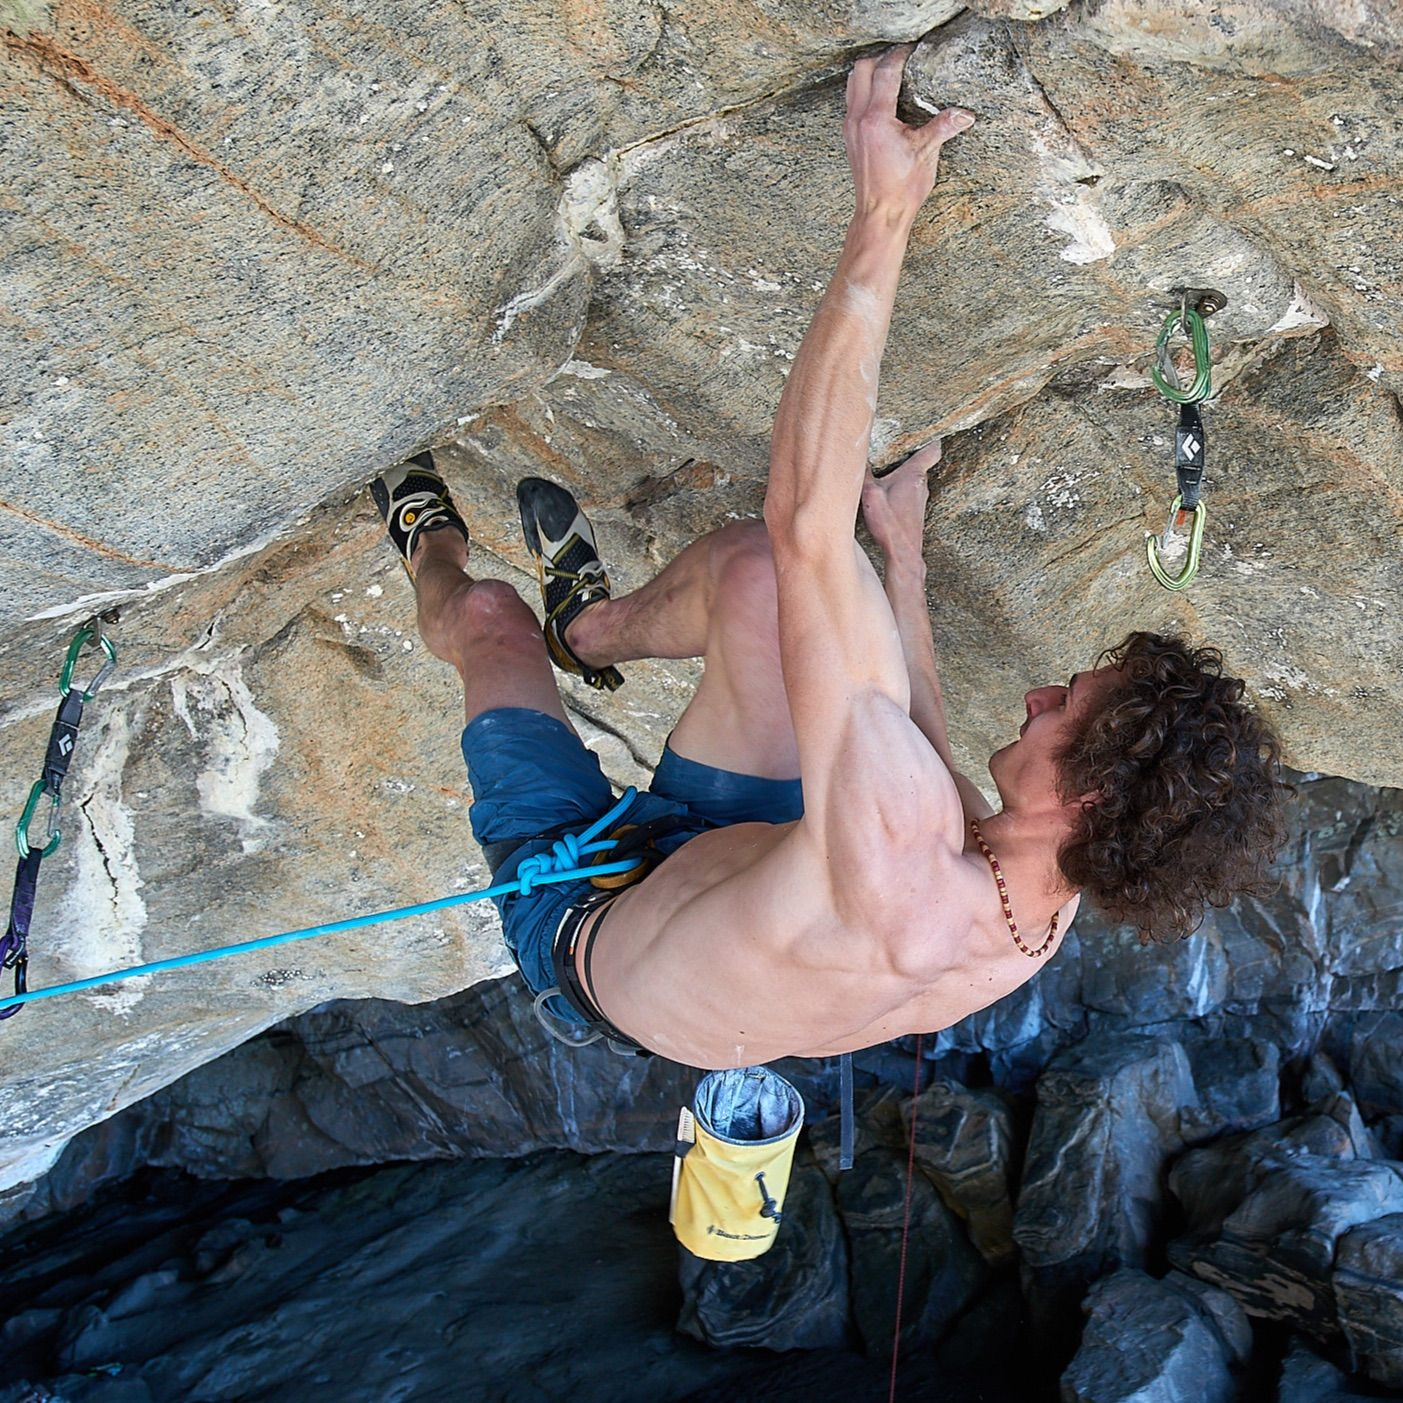 ADAM ONDRA - Exclusive Interview on 'Silence' The World's Most Difficult Climb 9c/5.15d